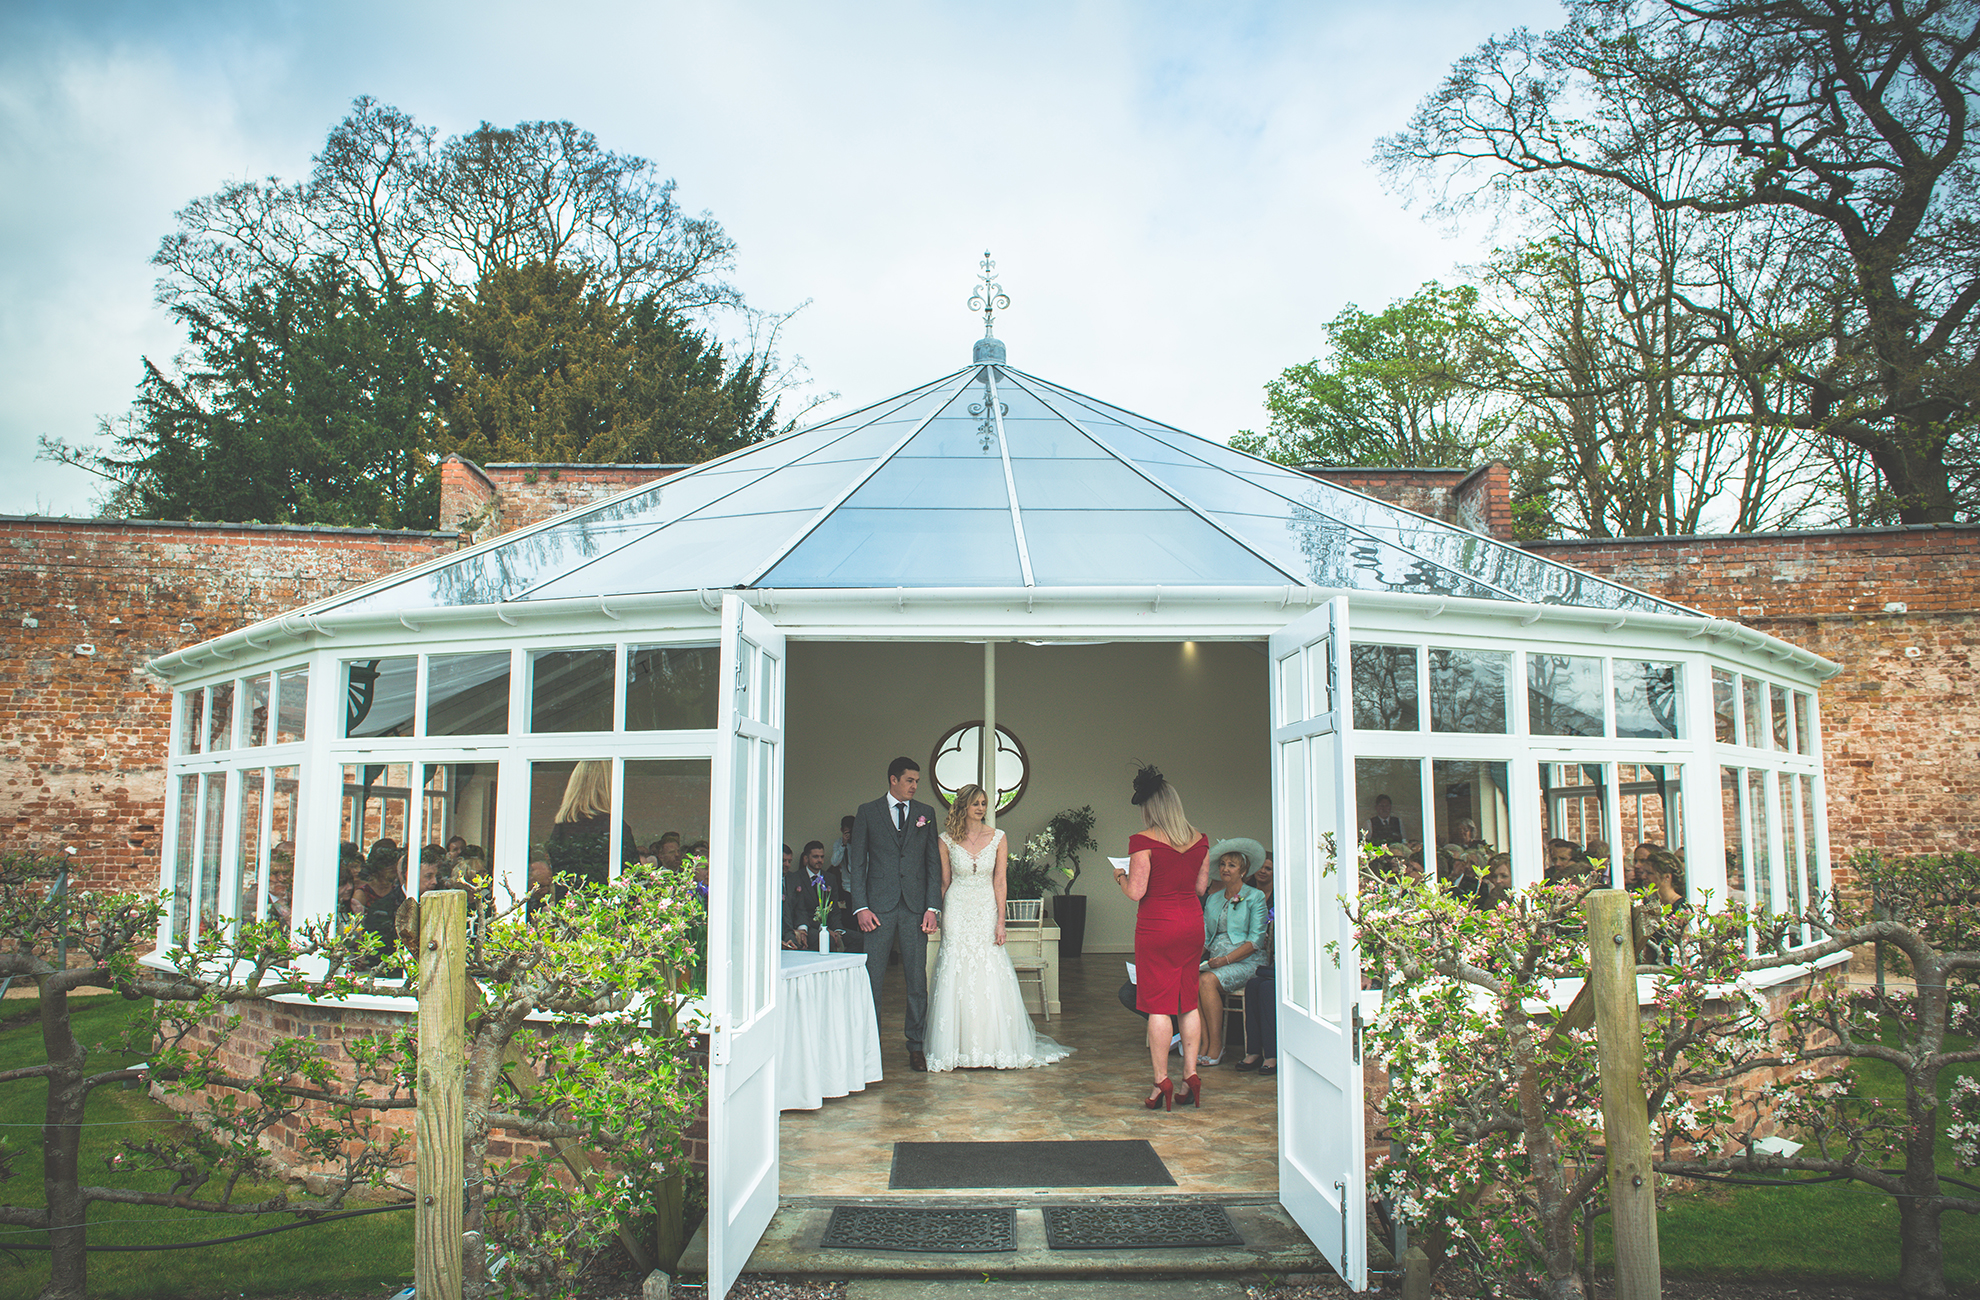 The bride and groom exchange marriage vows in the Glasshouse wedding ceremony venue